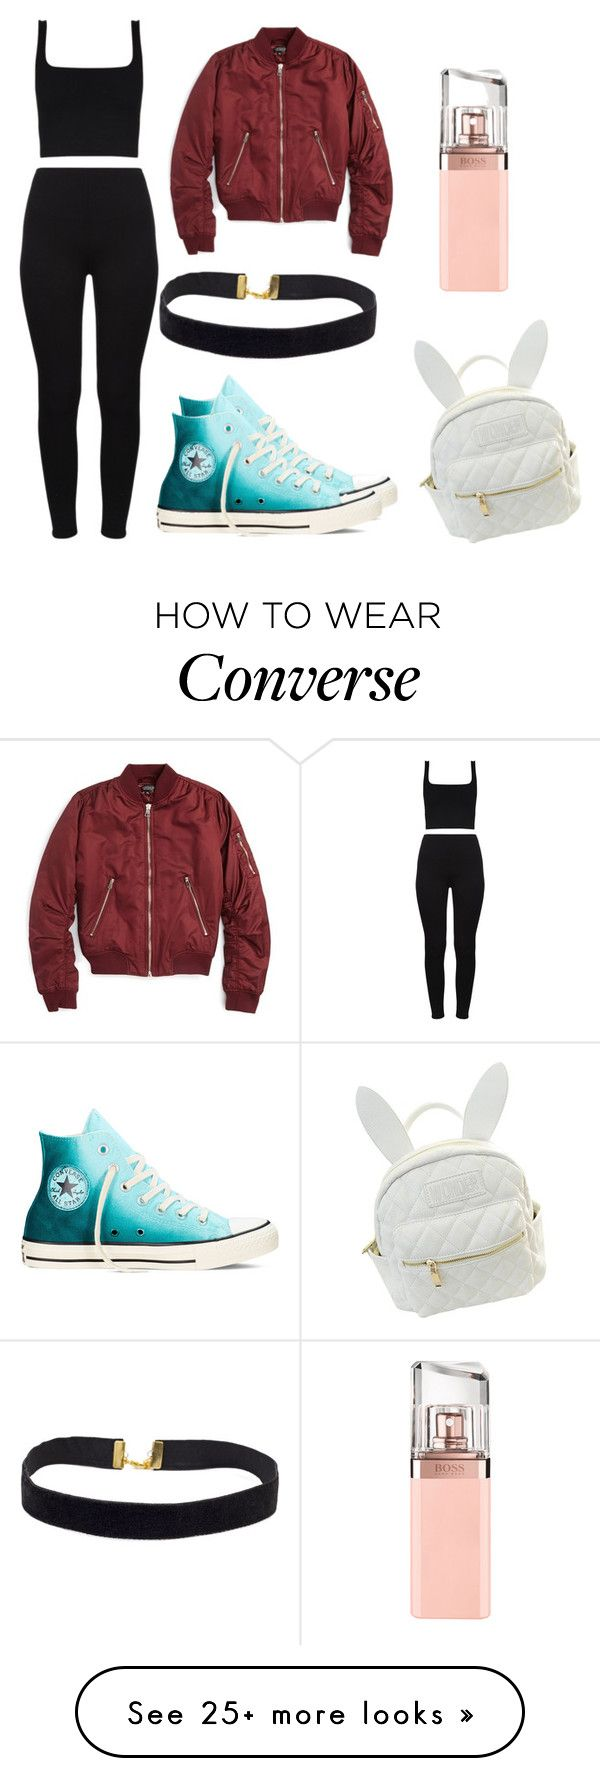 """""""Untitled #354"""" by sannasprofil on Polyvore featuring Converse, Topshop, cutekawaii and HUGO"""